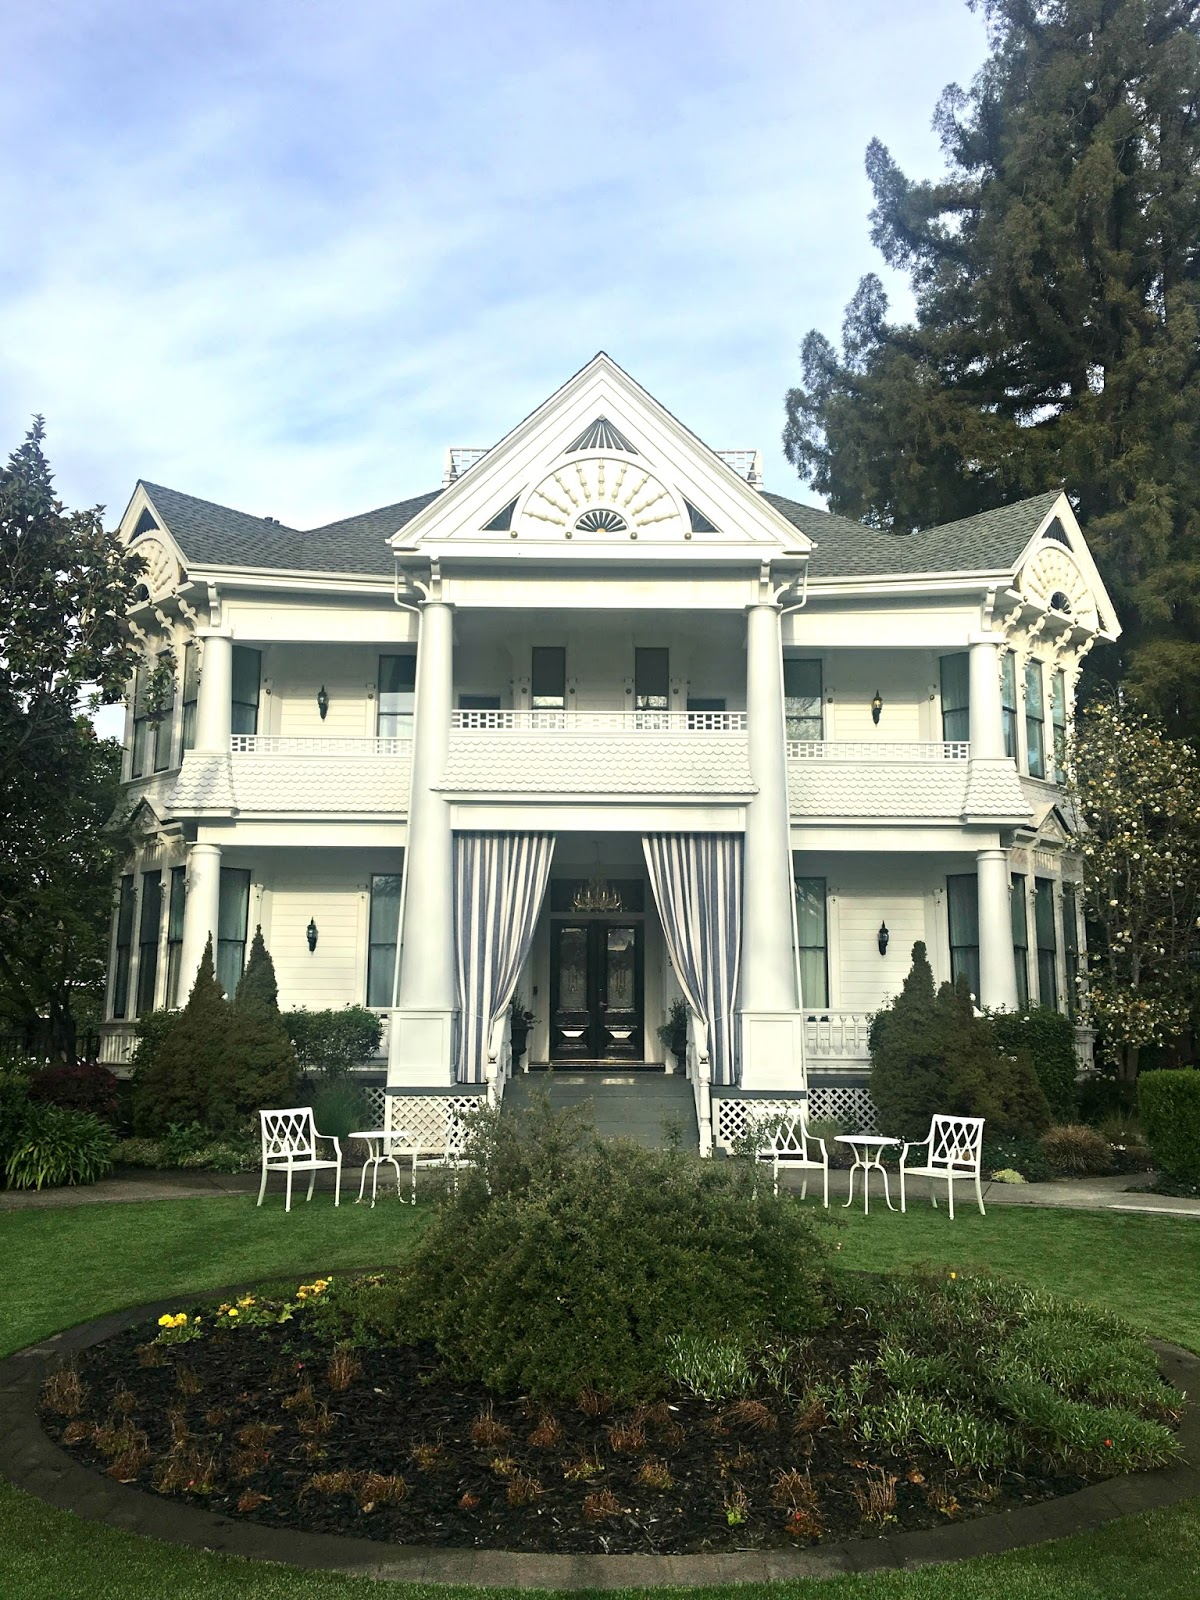 Places to stay in Napa, boutique hotel Napa, bed and breakfast Napa, wine country hotels